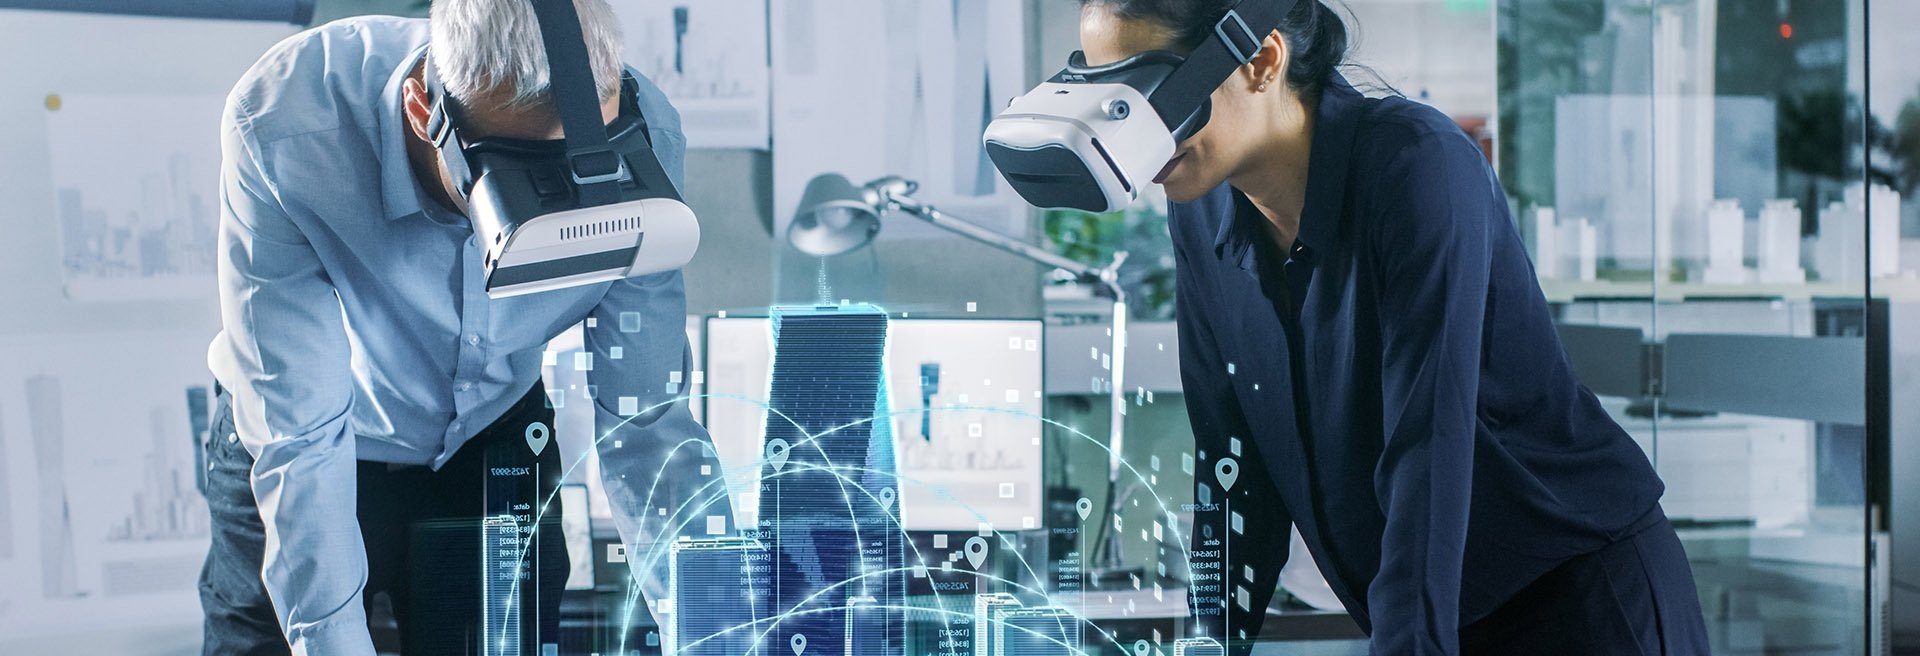 Is Your Company Ready to Use Virtual Reality & Mixed Reality